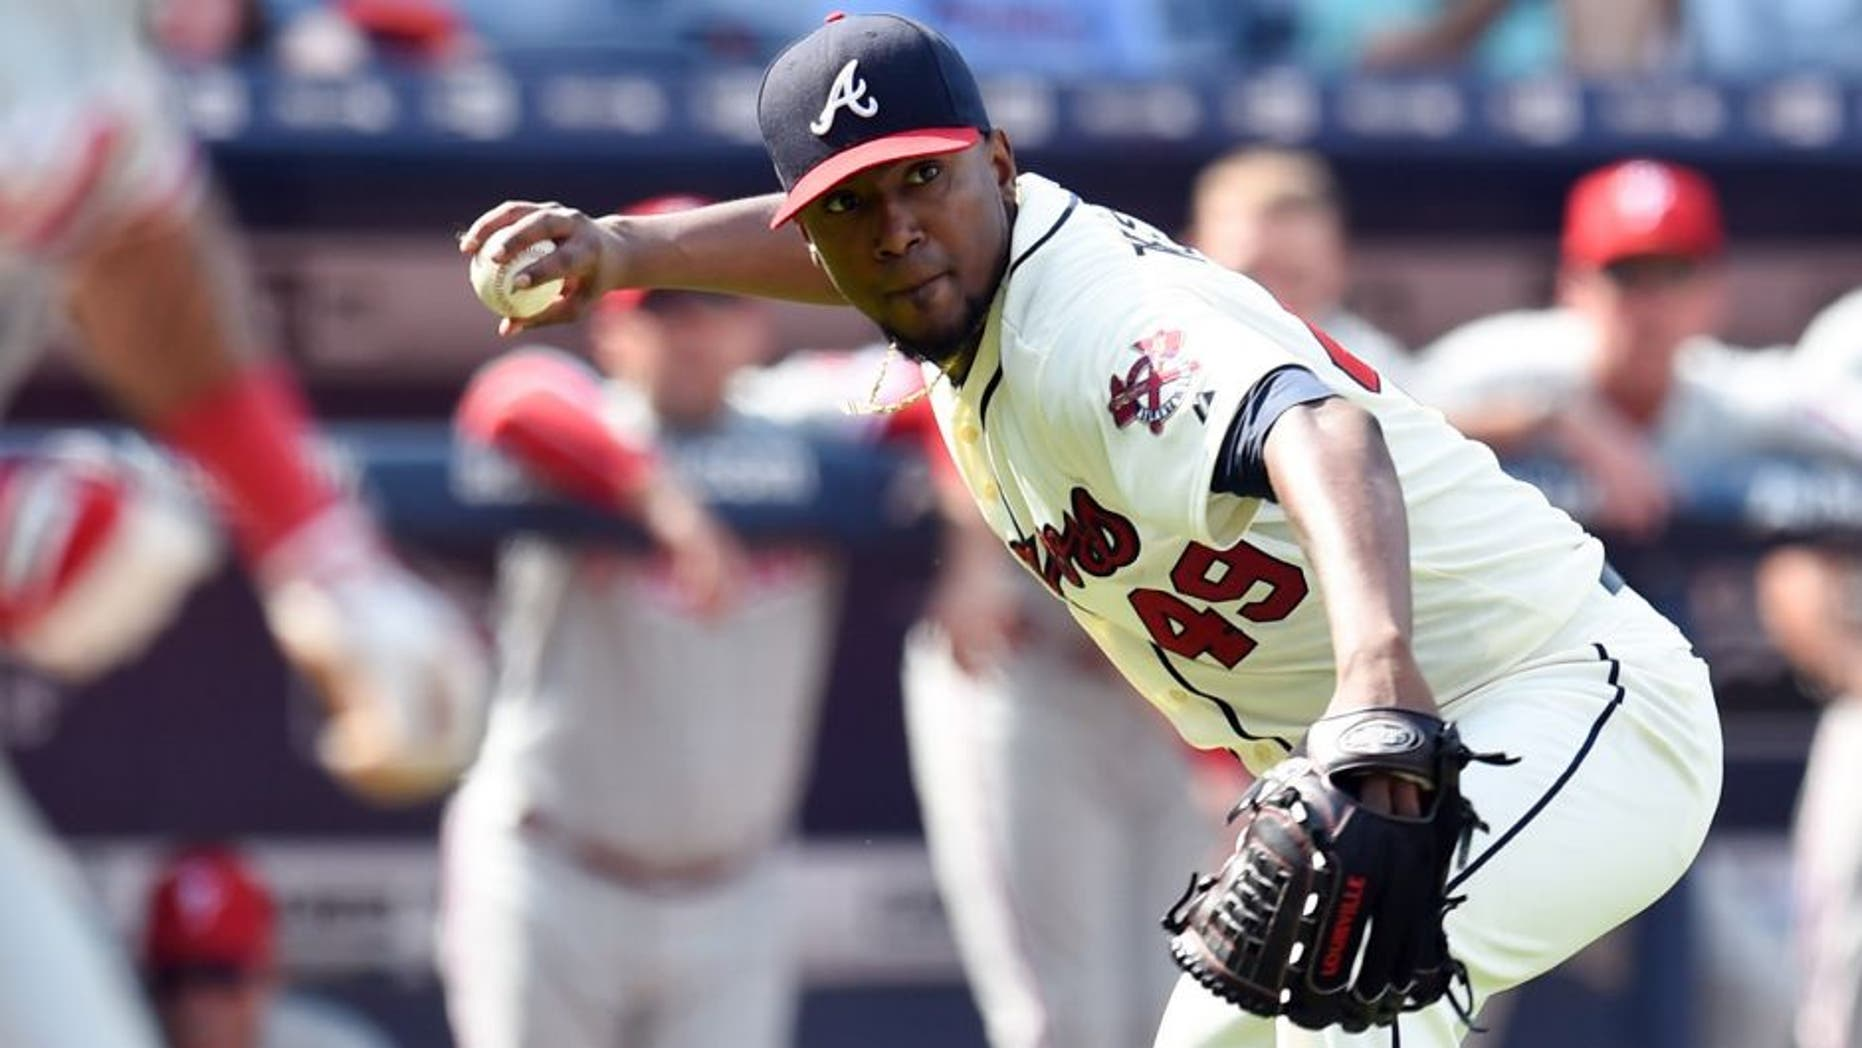 Sep 20, 2015; Atlanta, GA, USA; Atlanta Braves starting pitcher Julio Teheran (49) throws out a Philadelphia Phillies batter during the ninth inning at Turner Field. The Braves defeated the Phillies 2-1. Mandatory Credit: Dale Zanine-USA TODAY Sports